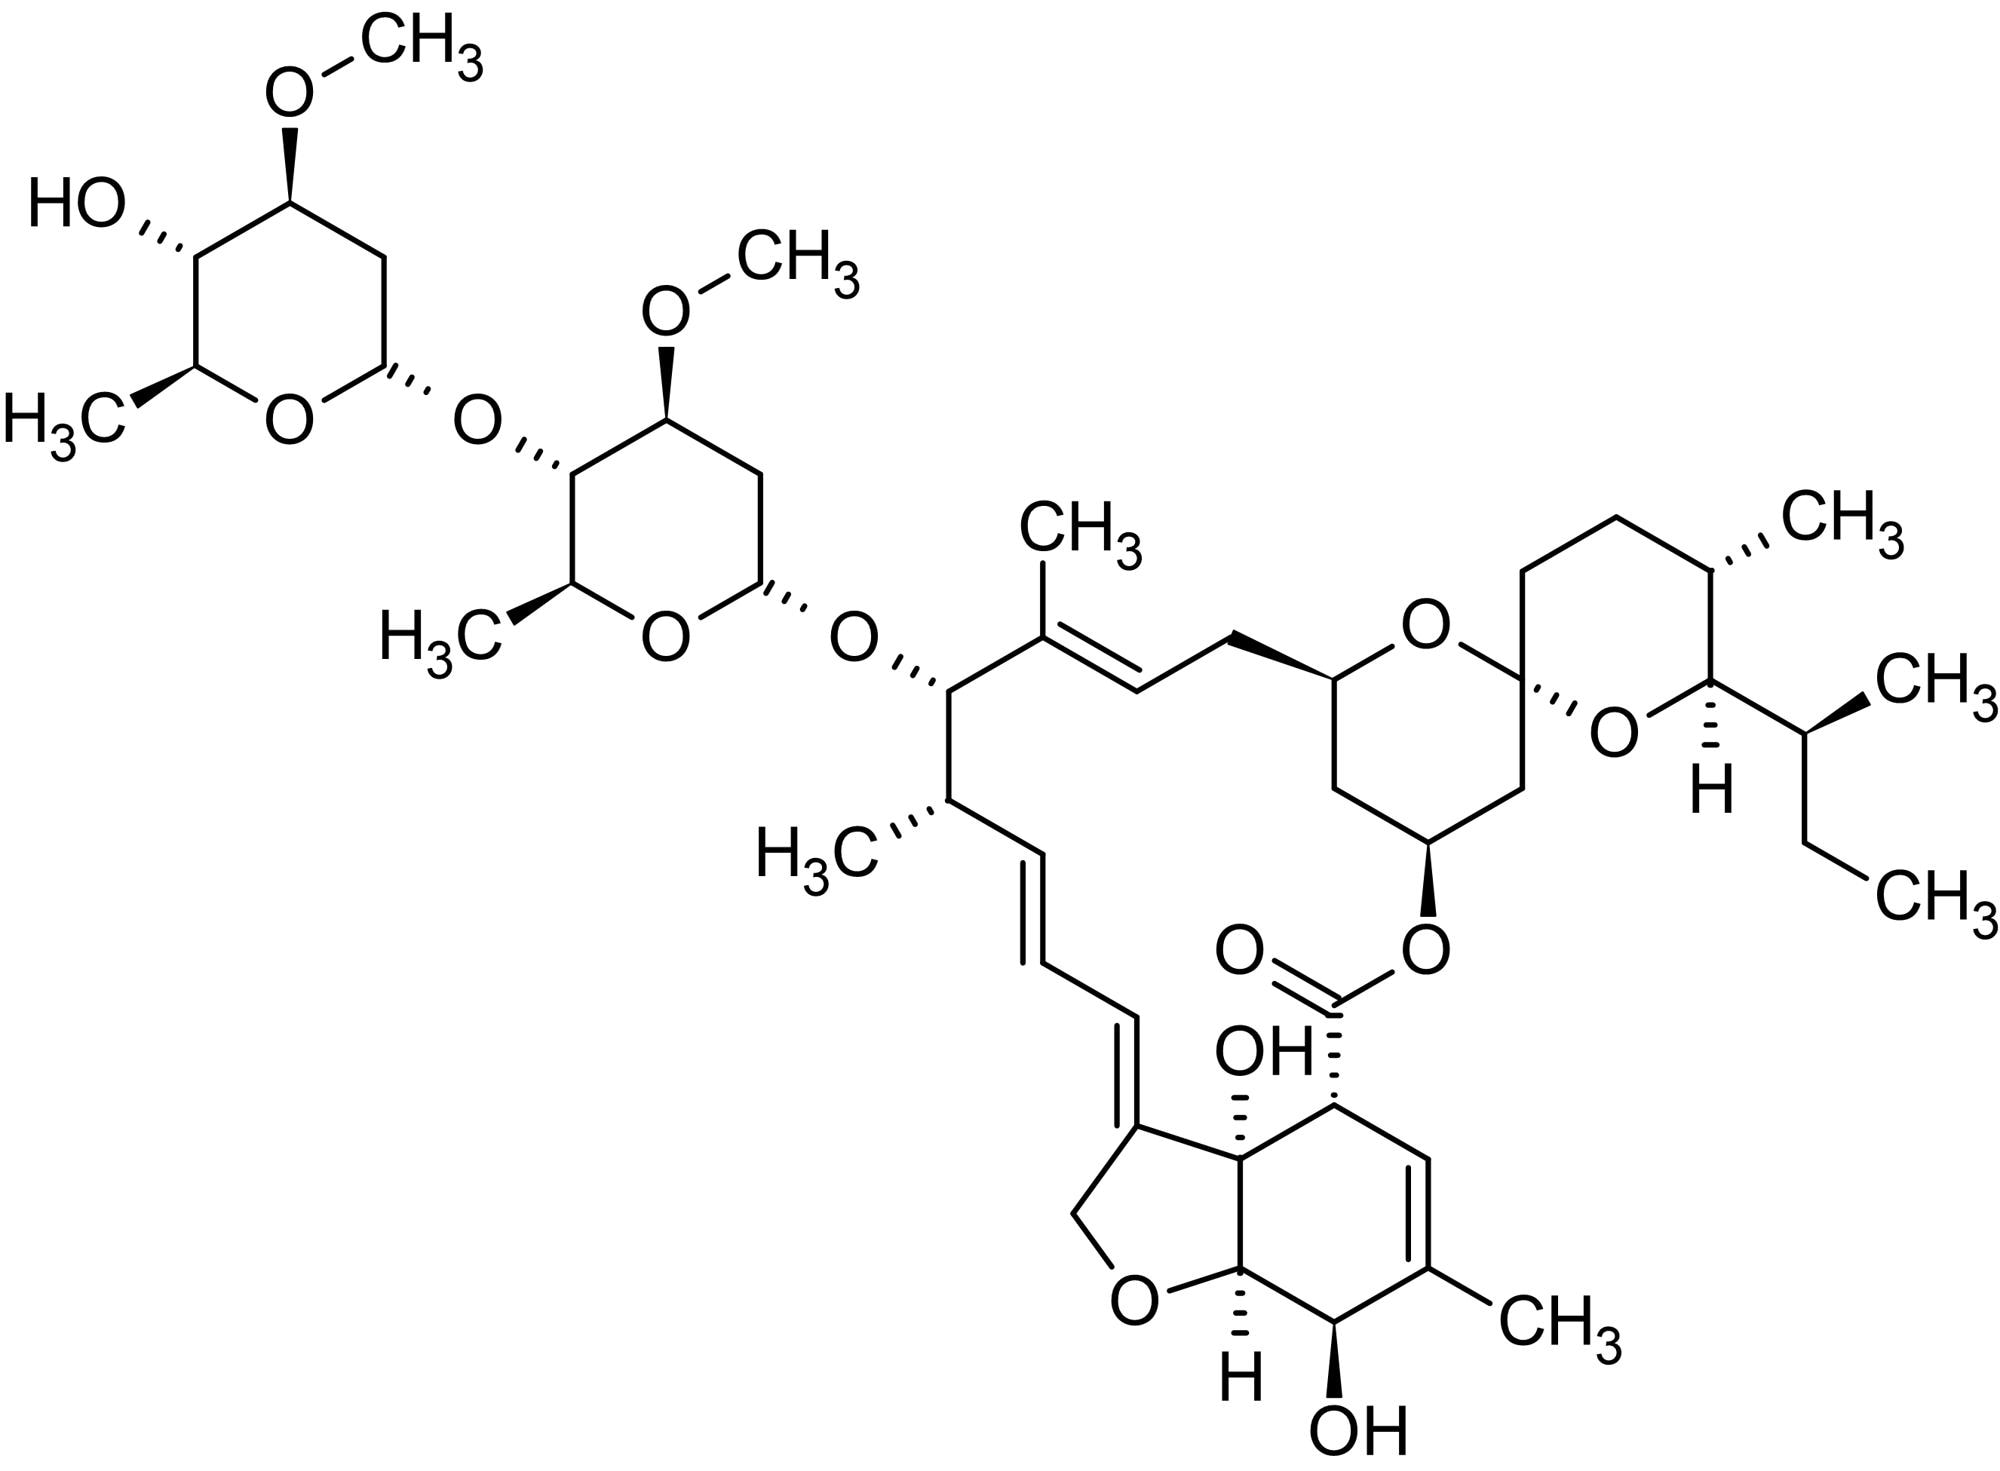 Chemical Structure - Ivermectin, Positive allosteric modulator of alpha7 nicotinic acetylcholine receptors (ab141813)